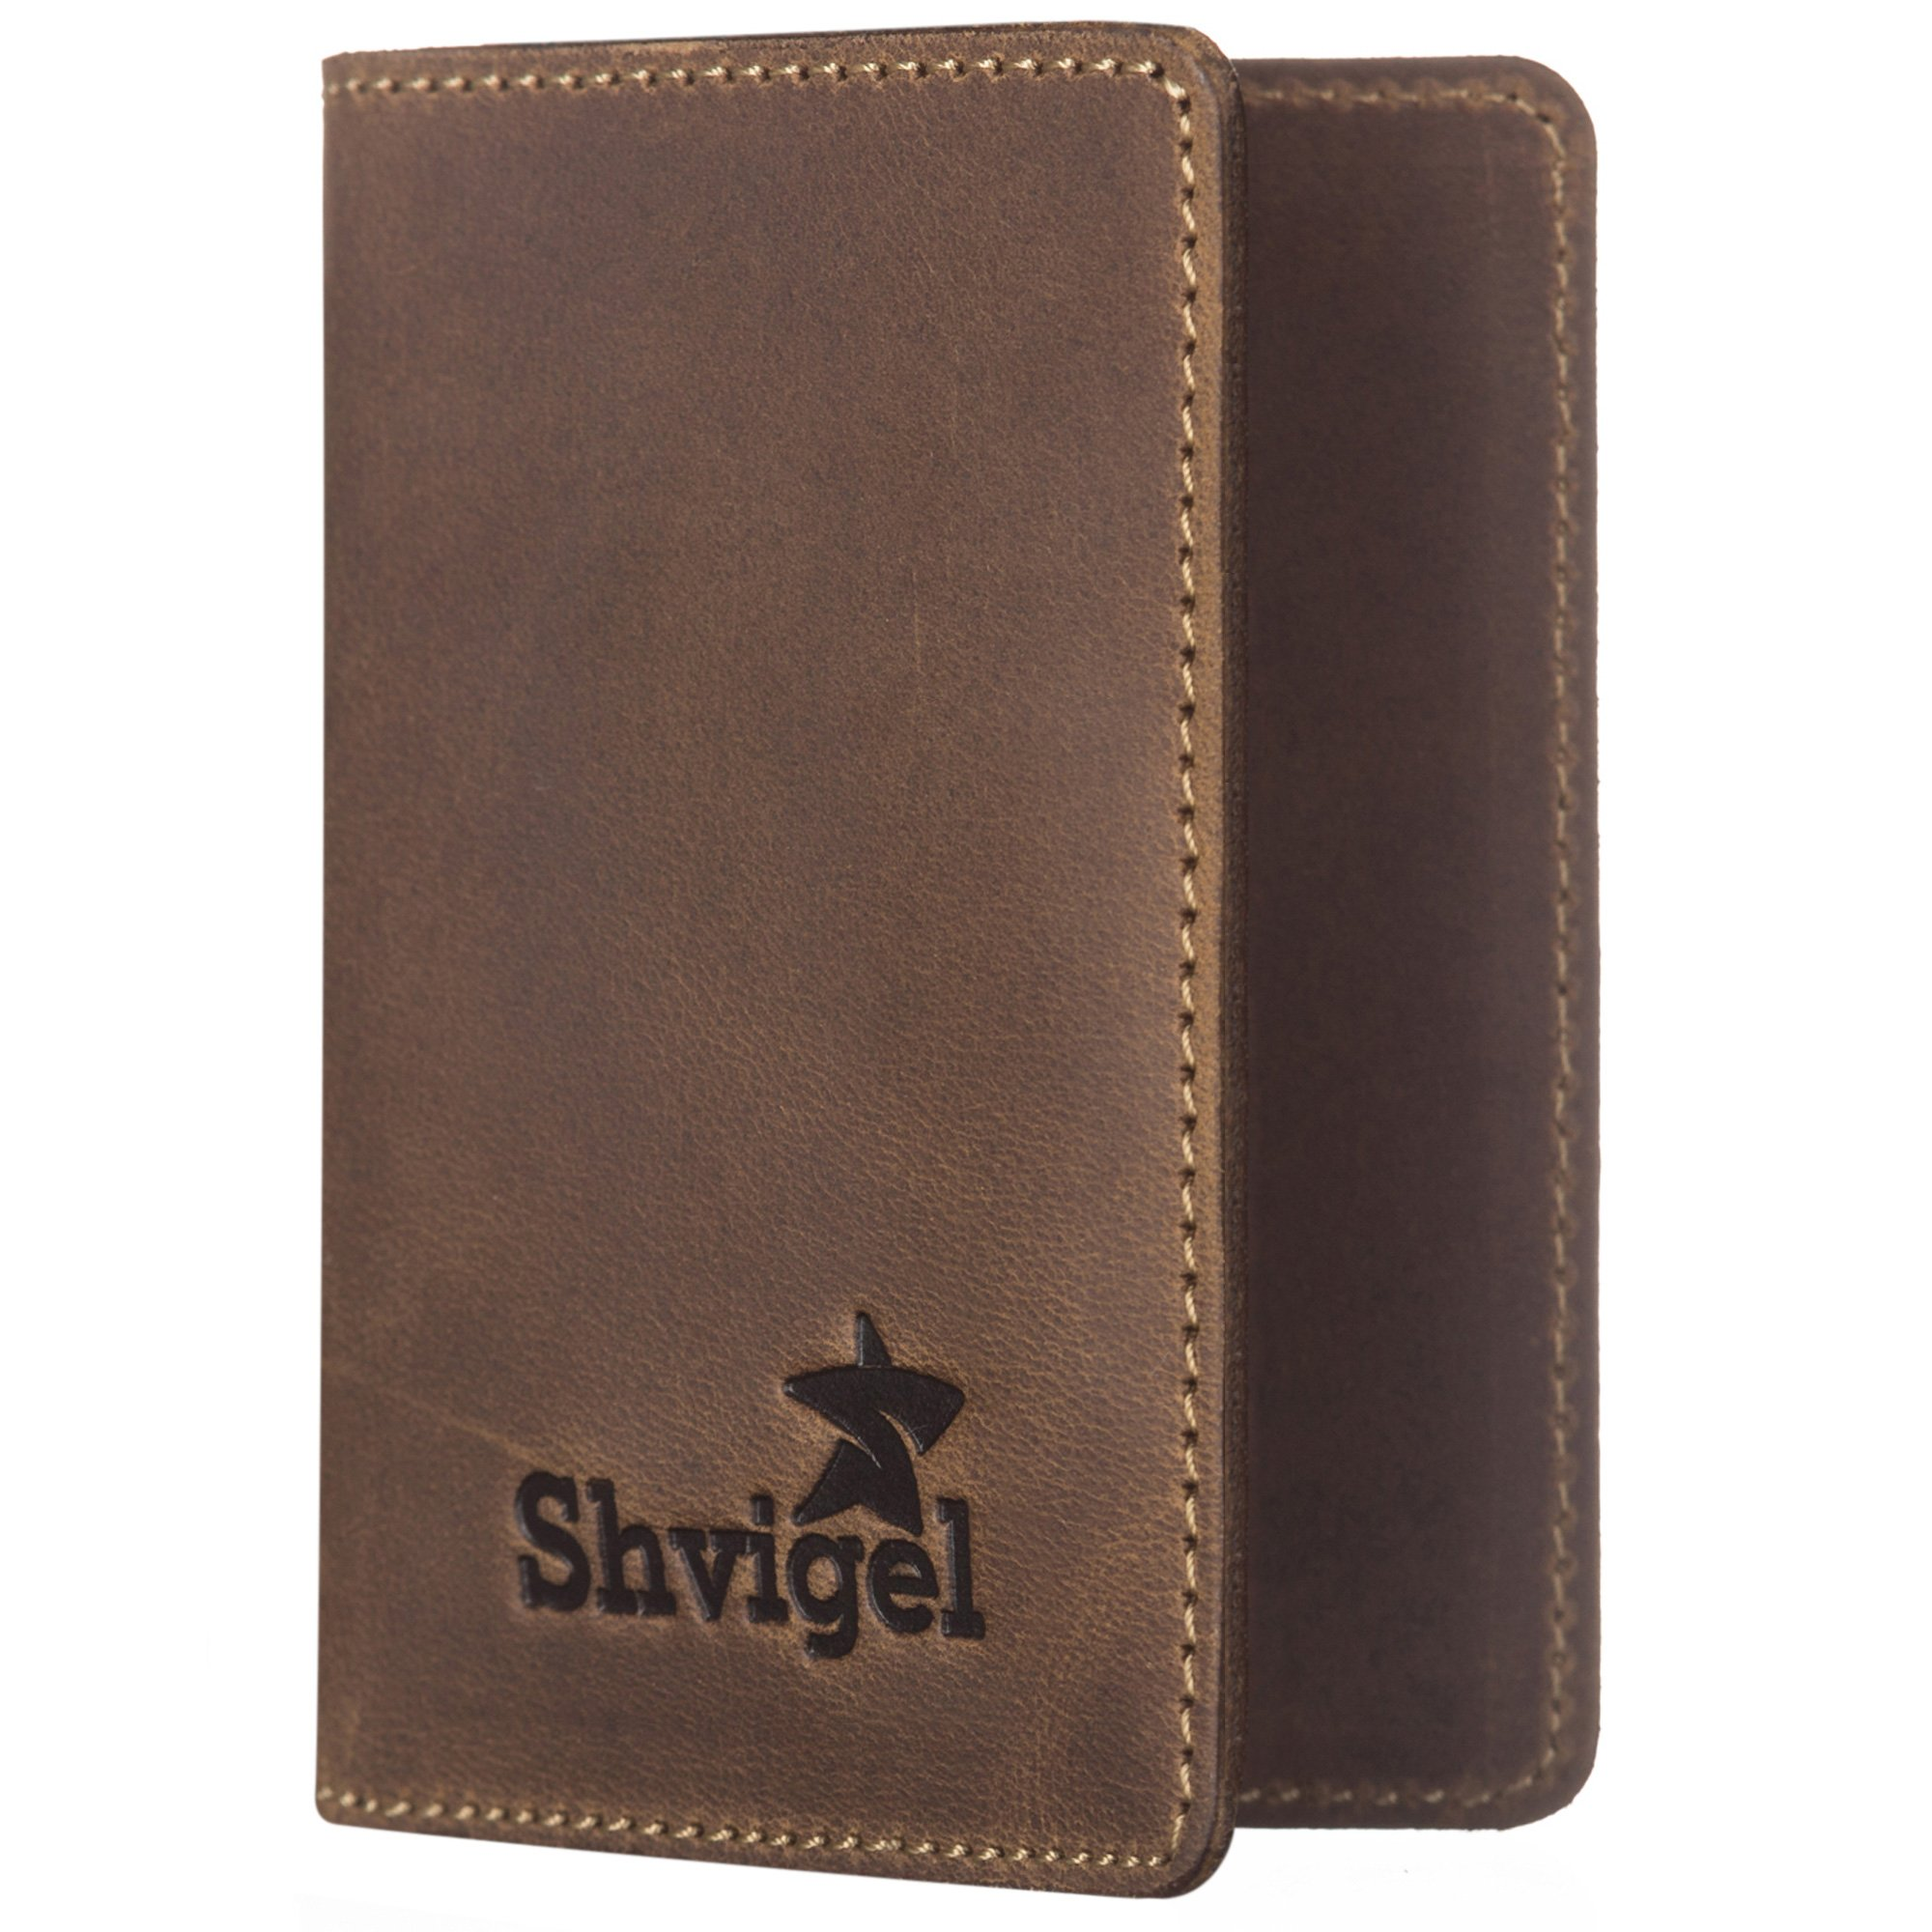 Sale Hot Sale Leather Passport Case - Ready for Main Street by VIDA VIDA Shop Offer Sale Online Cheap Real Authentic Natural And Freely skIsj7K9